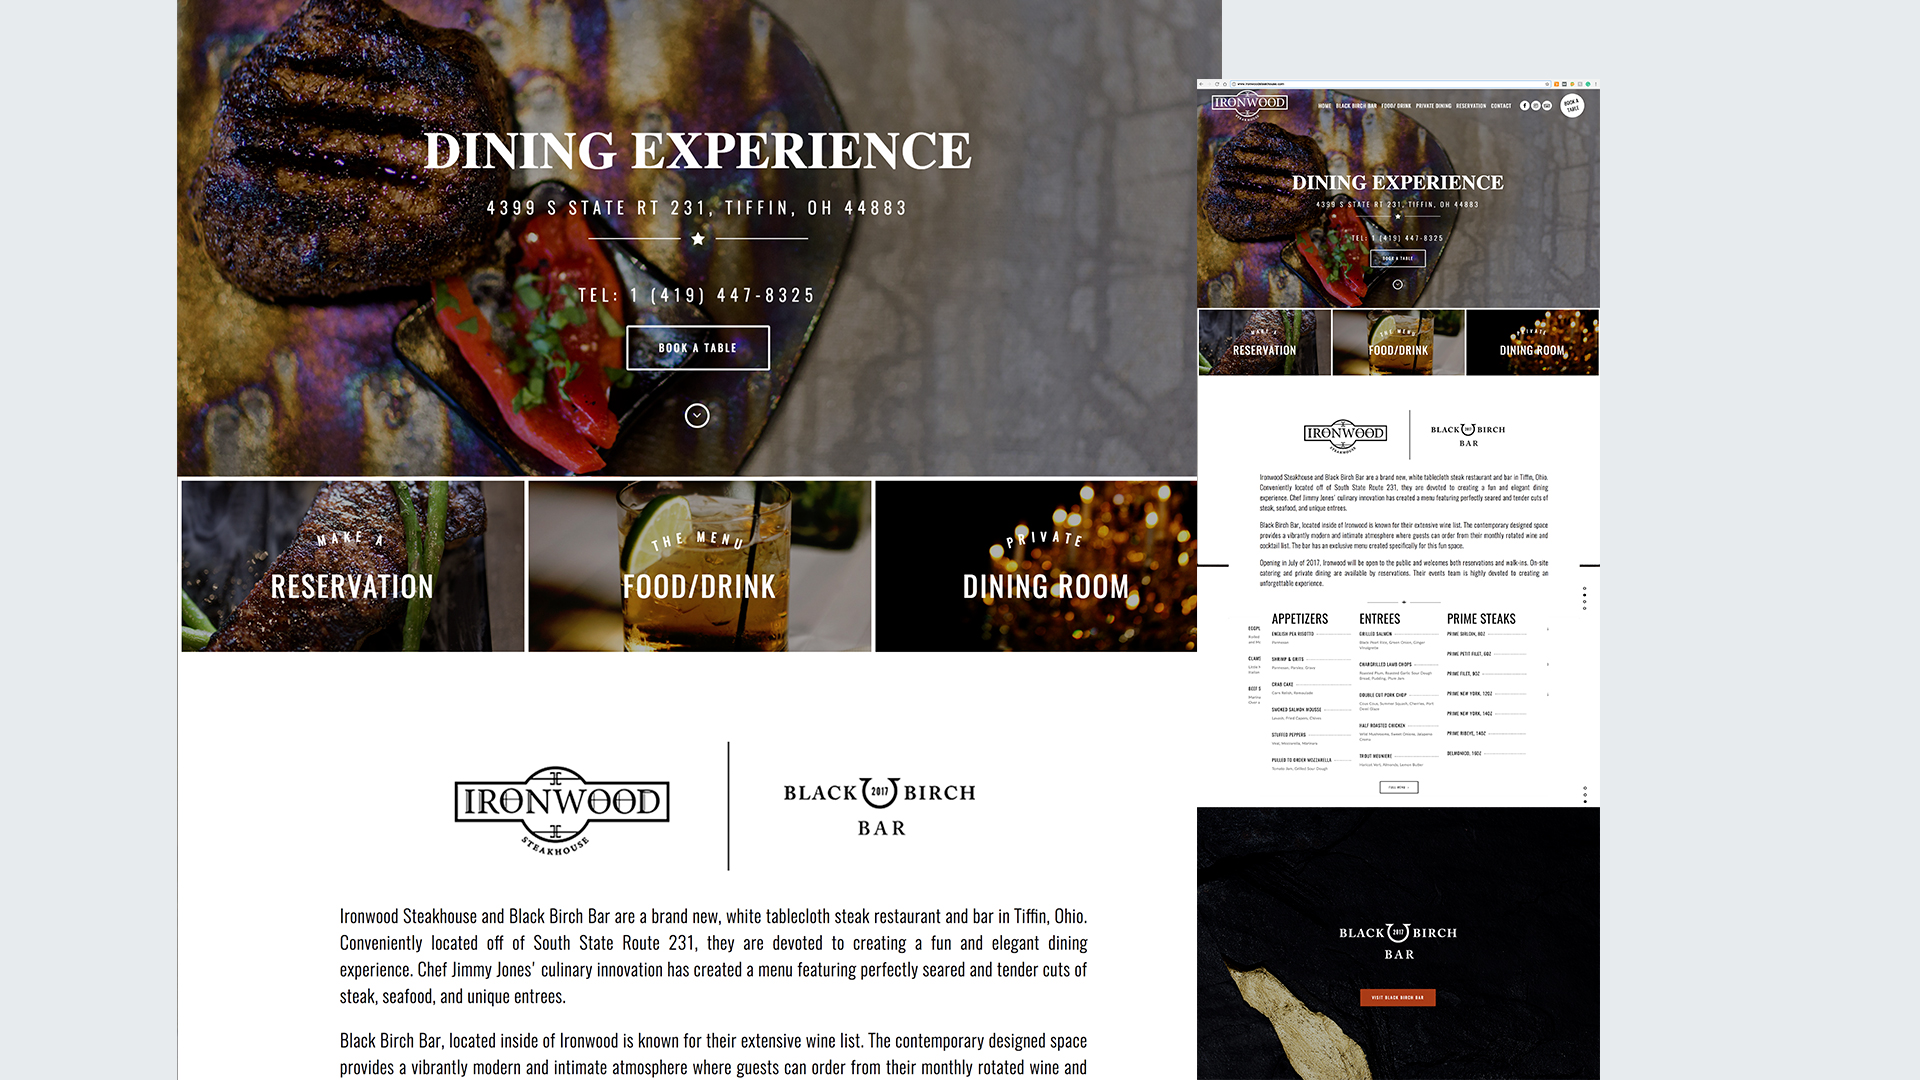 ironwood steakhouse tiffin ohio website